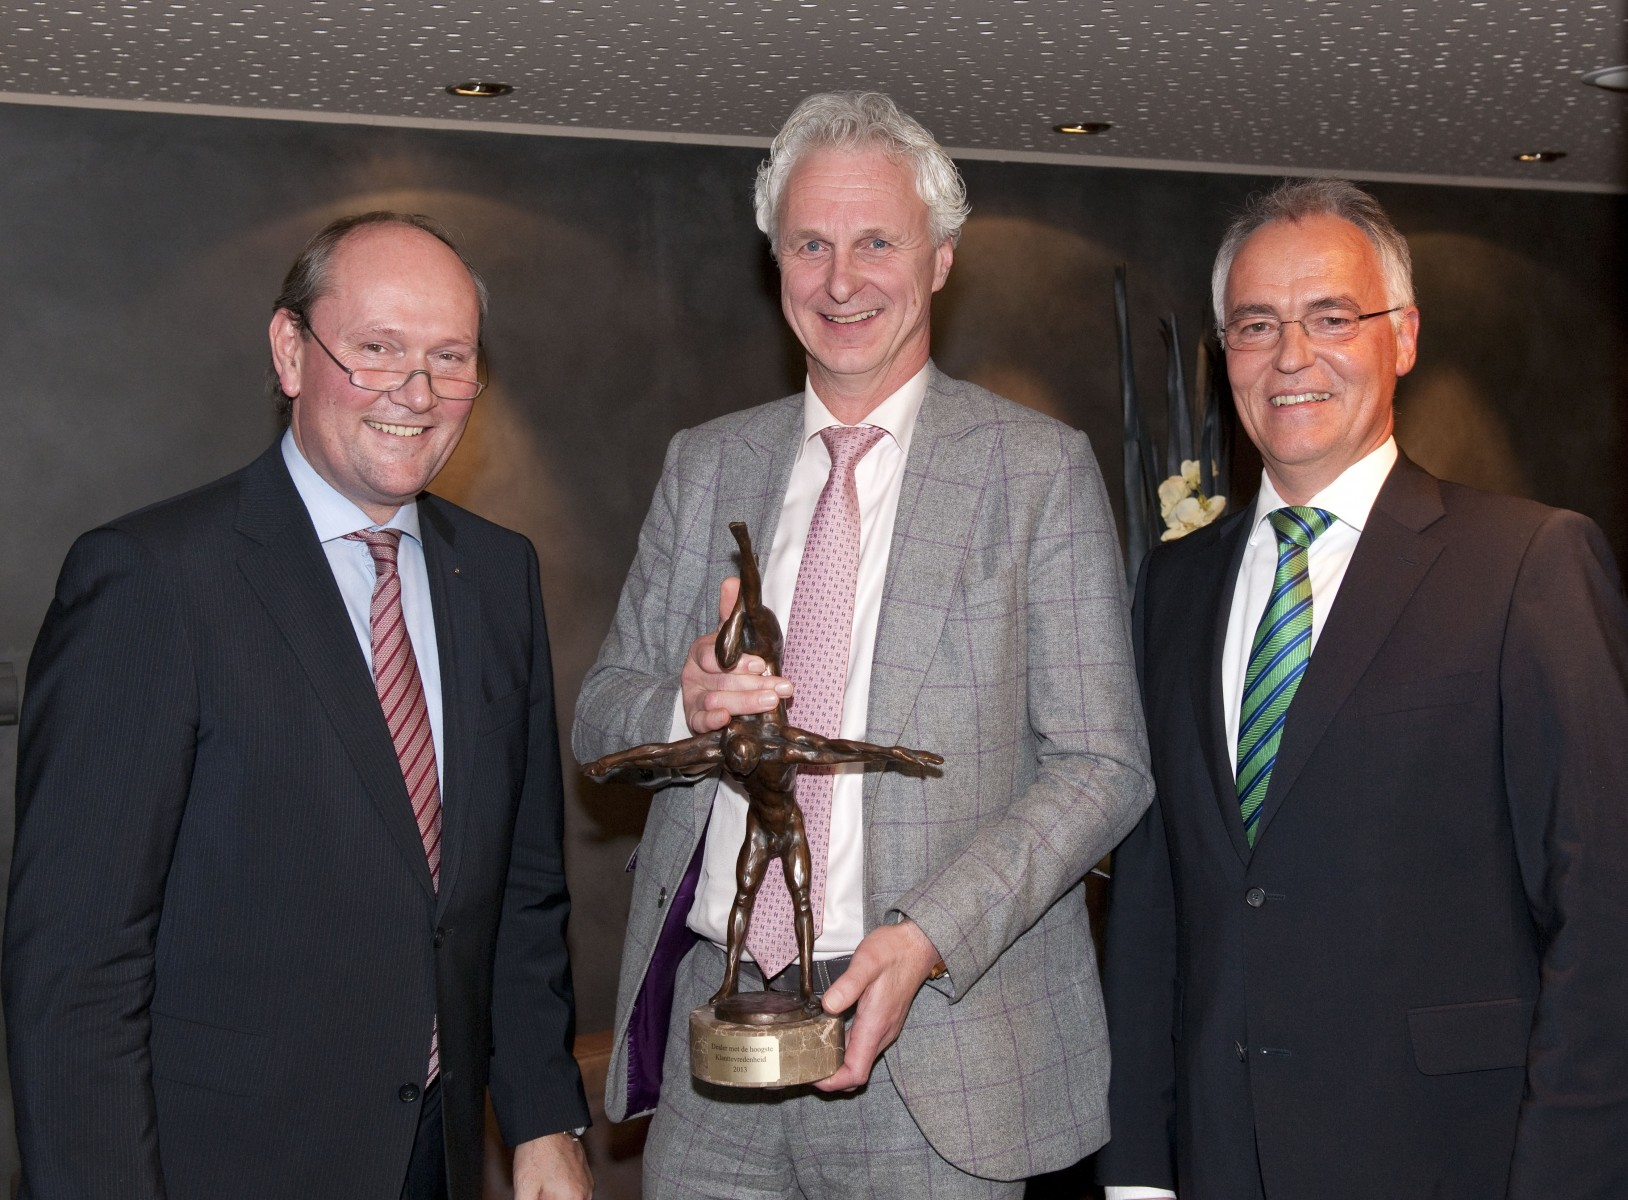 Cees Hendriks van ASV (midden) krijgt de trofee overhandigd door Marcus Breitschwerdt, Head of Europe Region Mercedes-Benz Cars (links) en Hans-Bahne Hansen, CEO Mercedes-Benz Nederland (rechts).